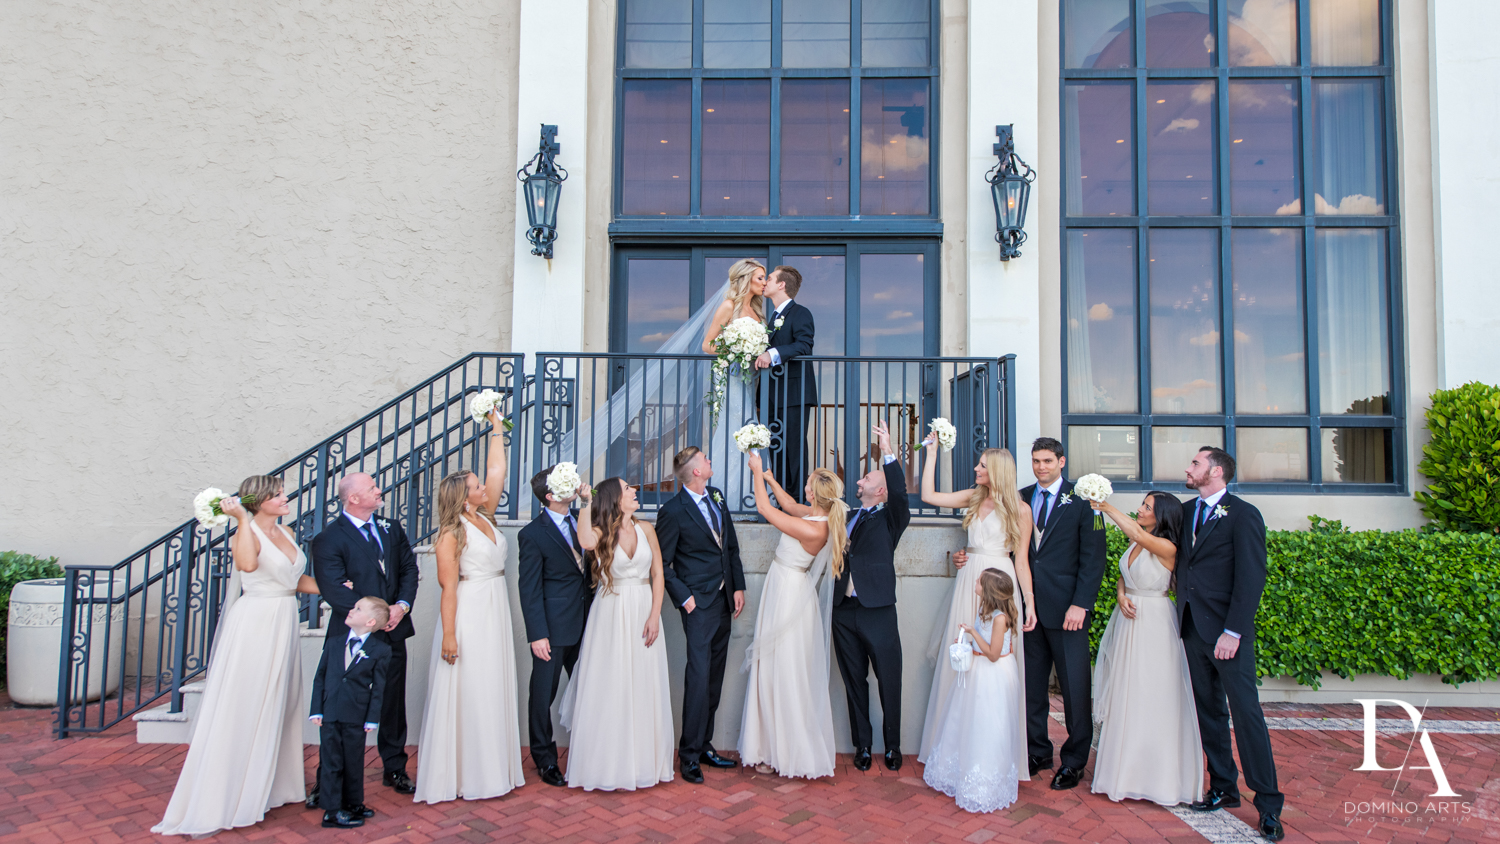 bridal party at Extravagant Wedding at The Breakers Palm Beach by Domino Arts Photography